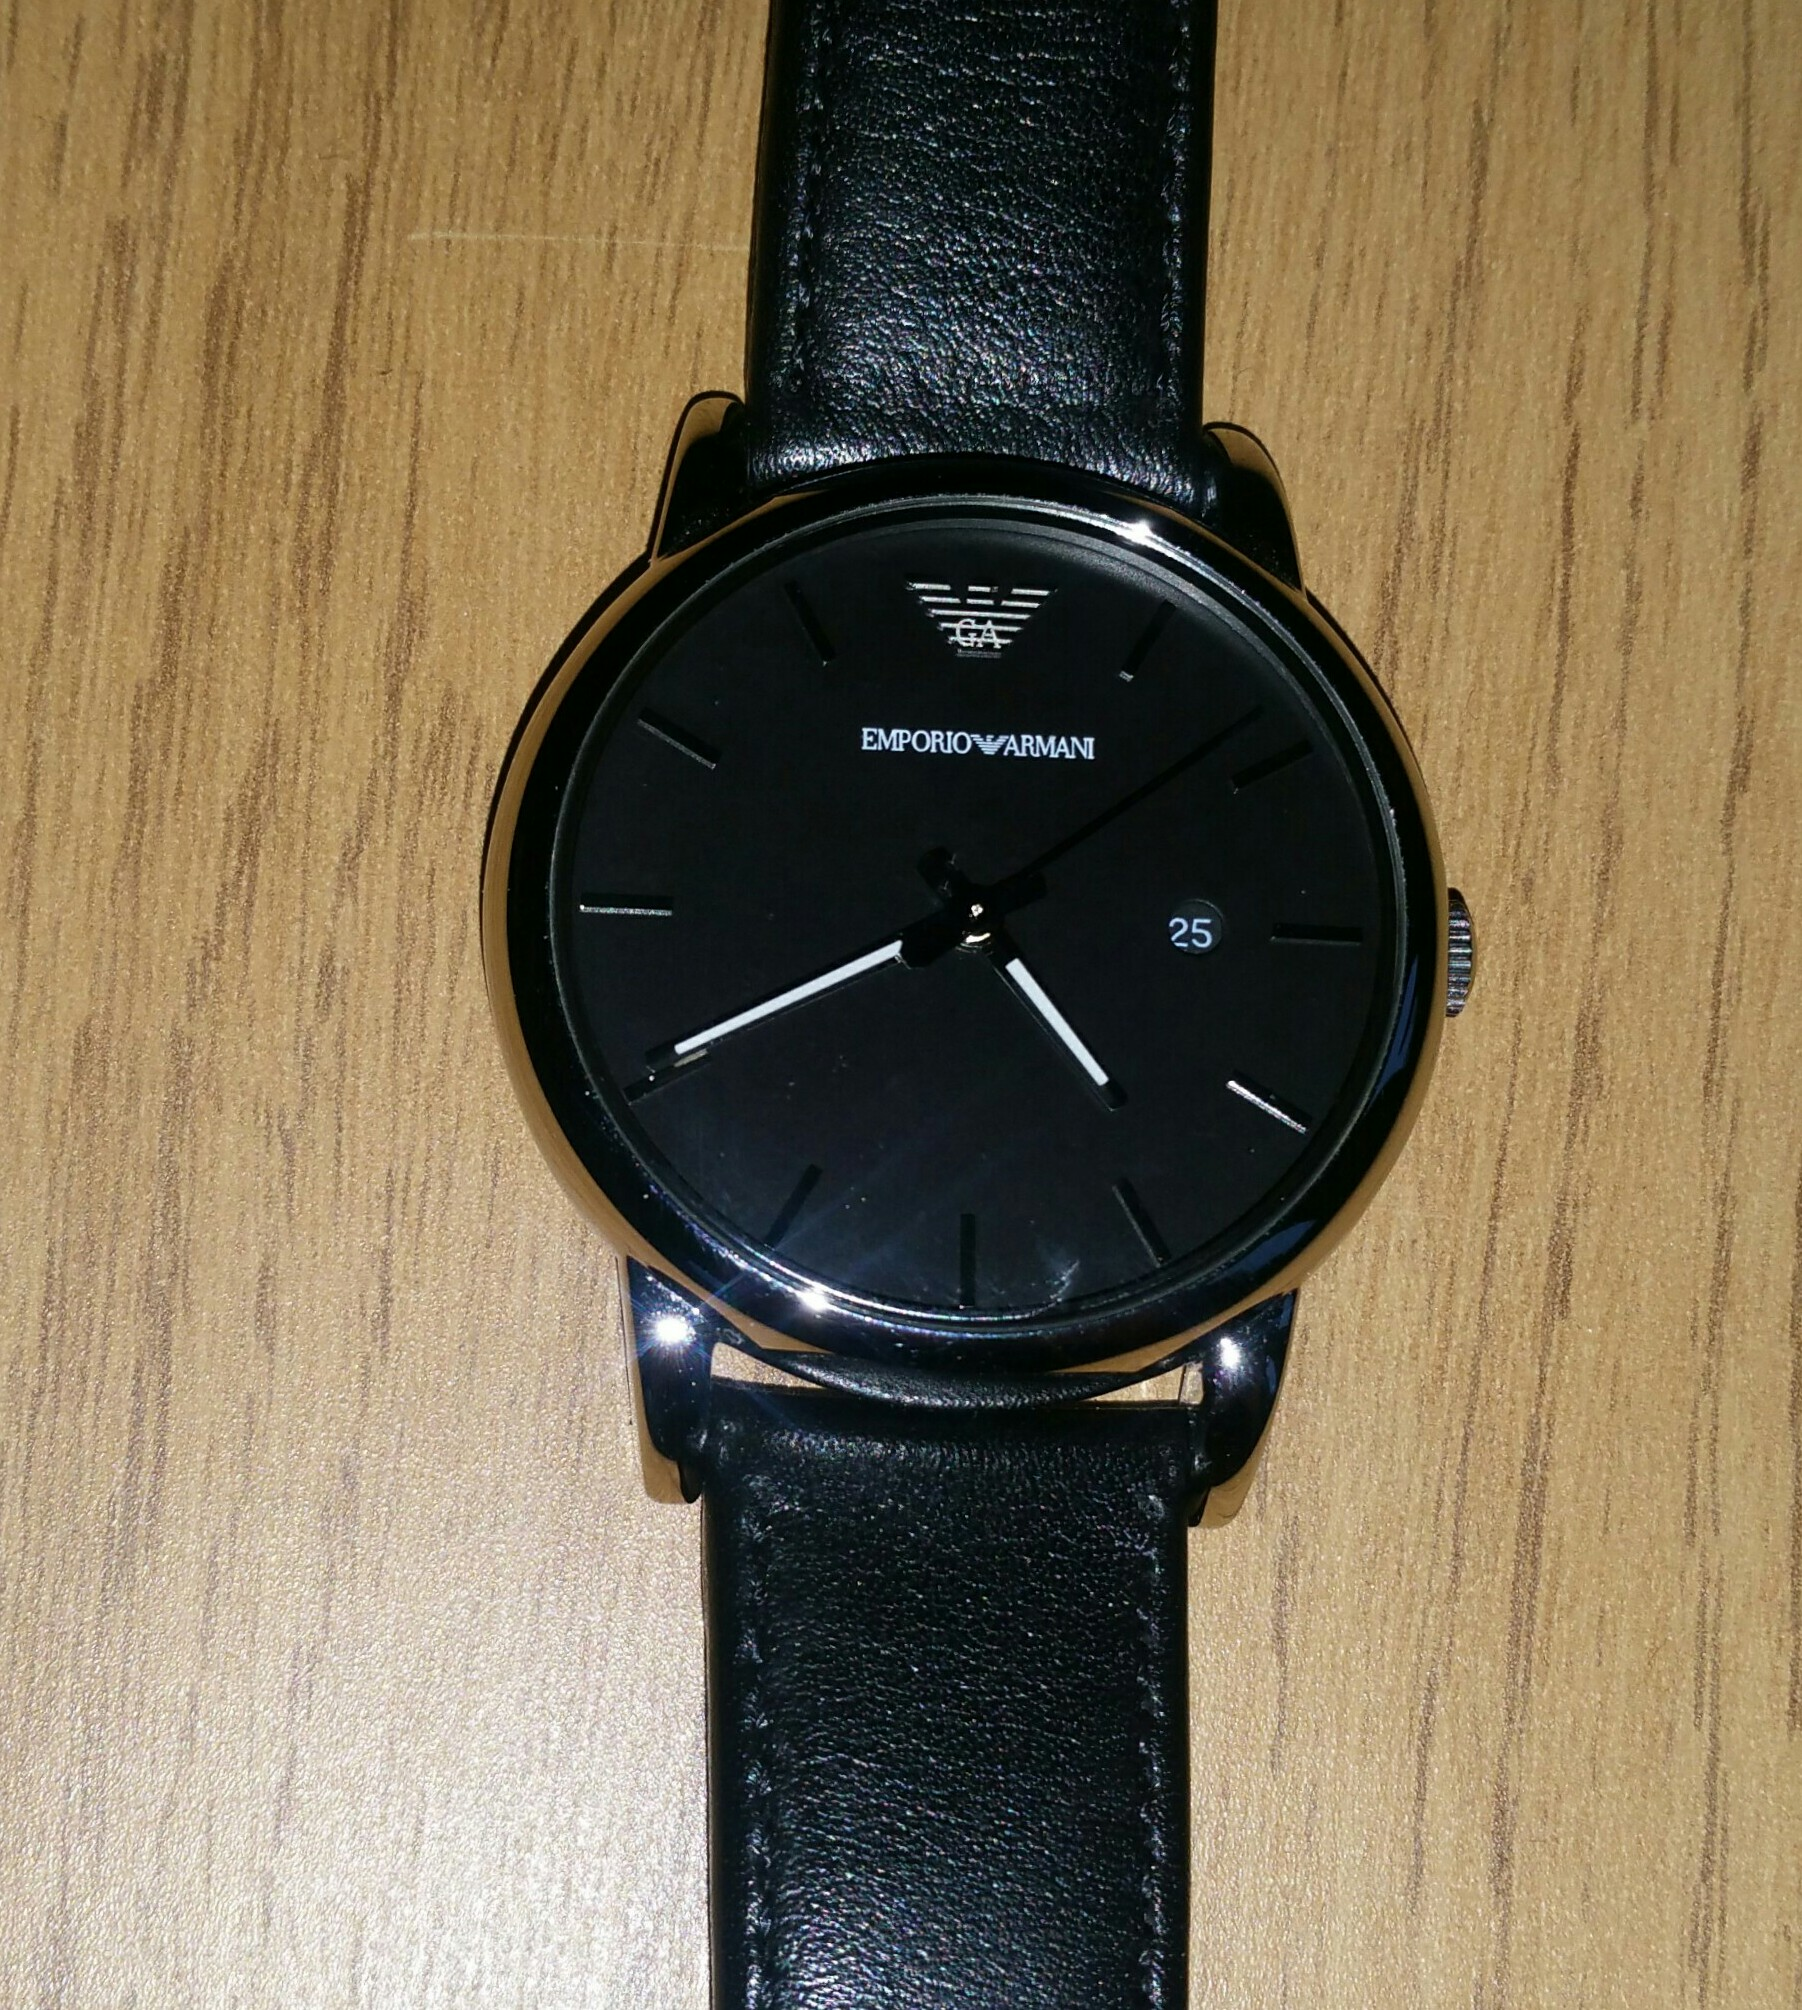 ffd1975be6d0 I purchased this watch as an extra Xmas present for my 15 year old son. He  loved it. It has a plain black leather strap which is just nice and simple  and ...